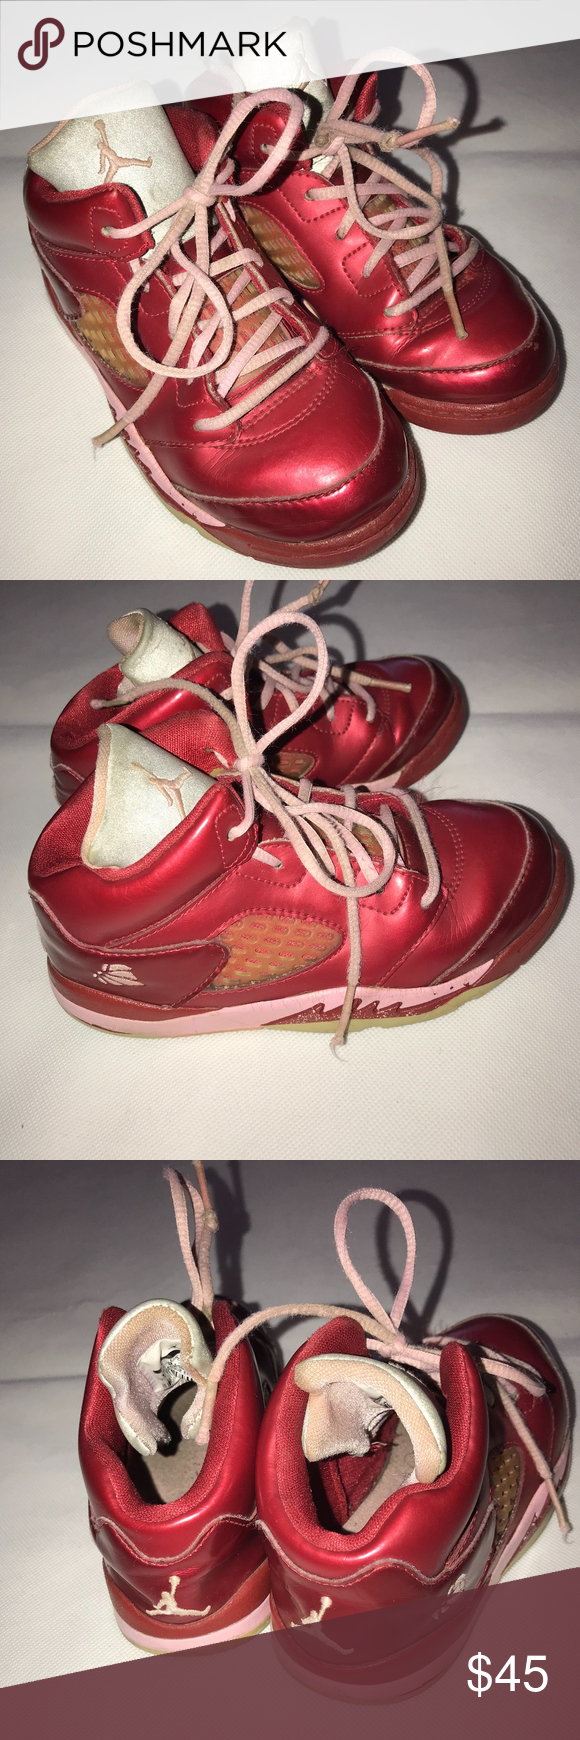 best service 79b53 020c0 Valentine s Day JORDAN High Top Sneakers Vintage Size 10 US (approx age 4 5)  girls (Toddler Young Girl) sneakers, vintage very hard to find, ...